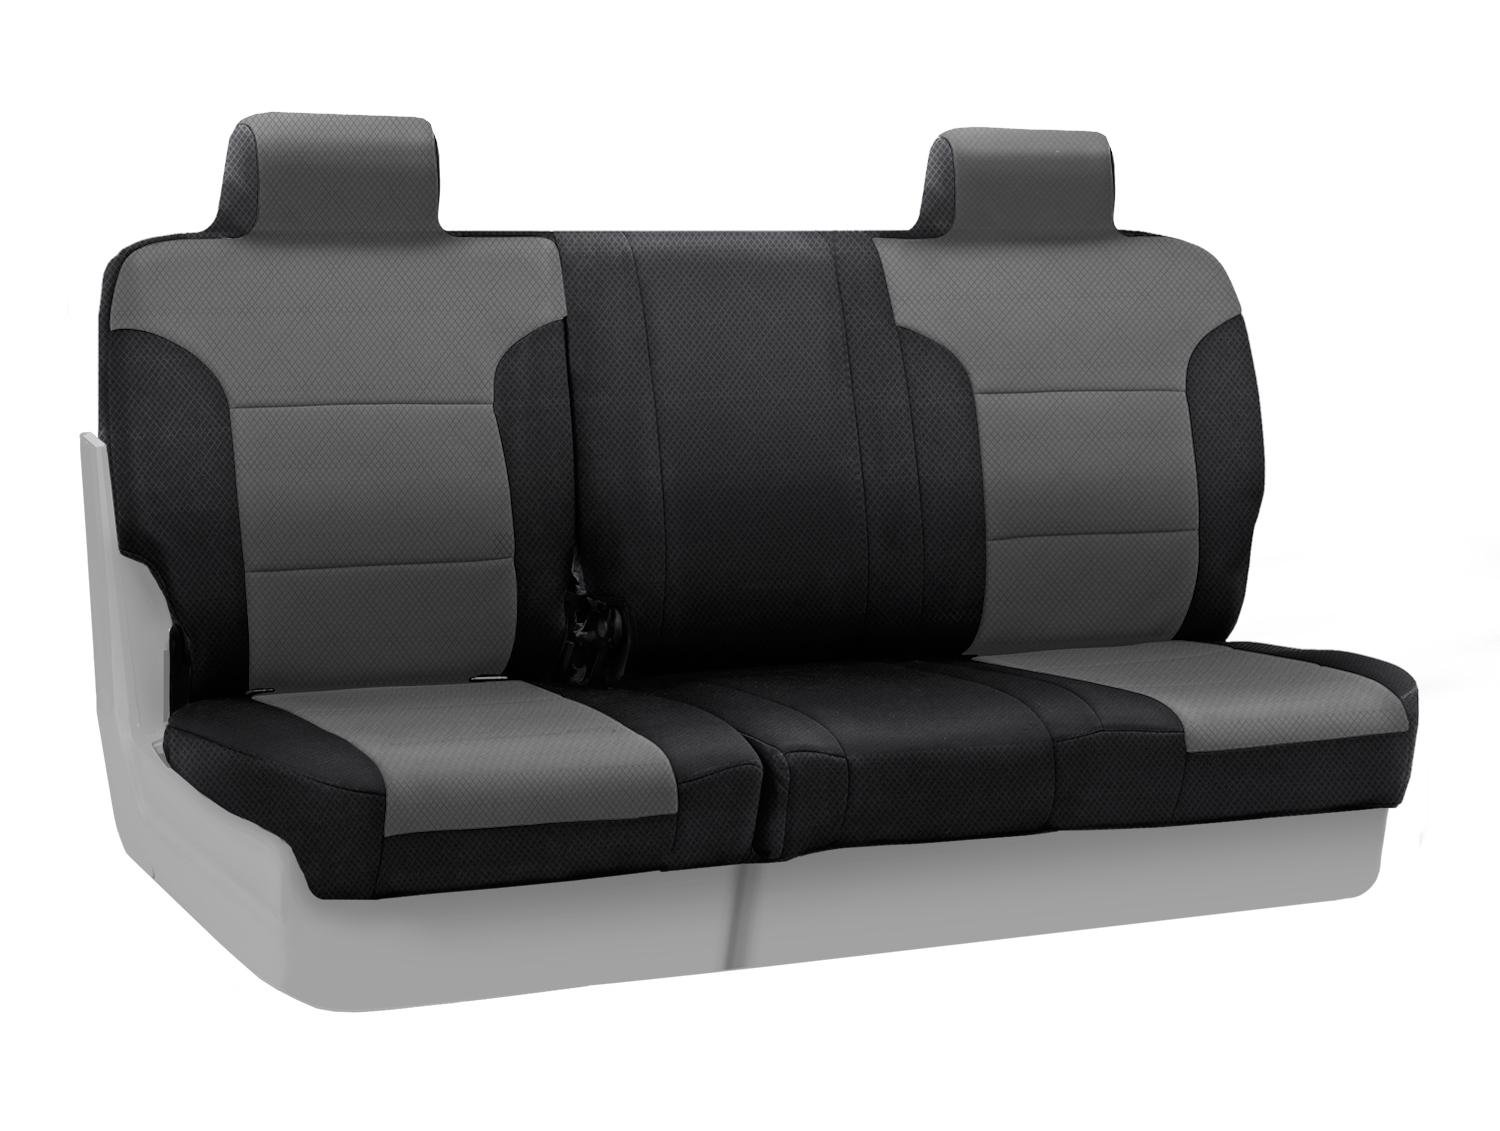 Coverking Custom Fit Front 60/40 Bench Seat Cover for Select Chevrolet S10 Models - Spacermesh 2-Tone (Gray with Black Sides)